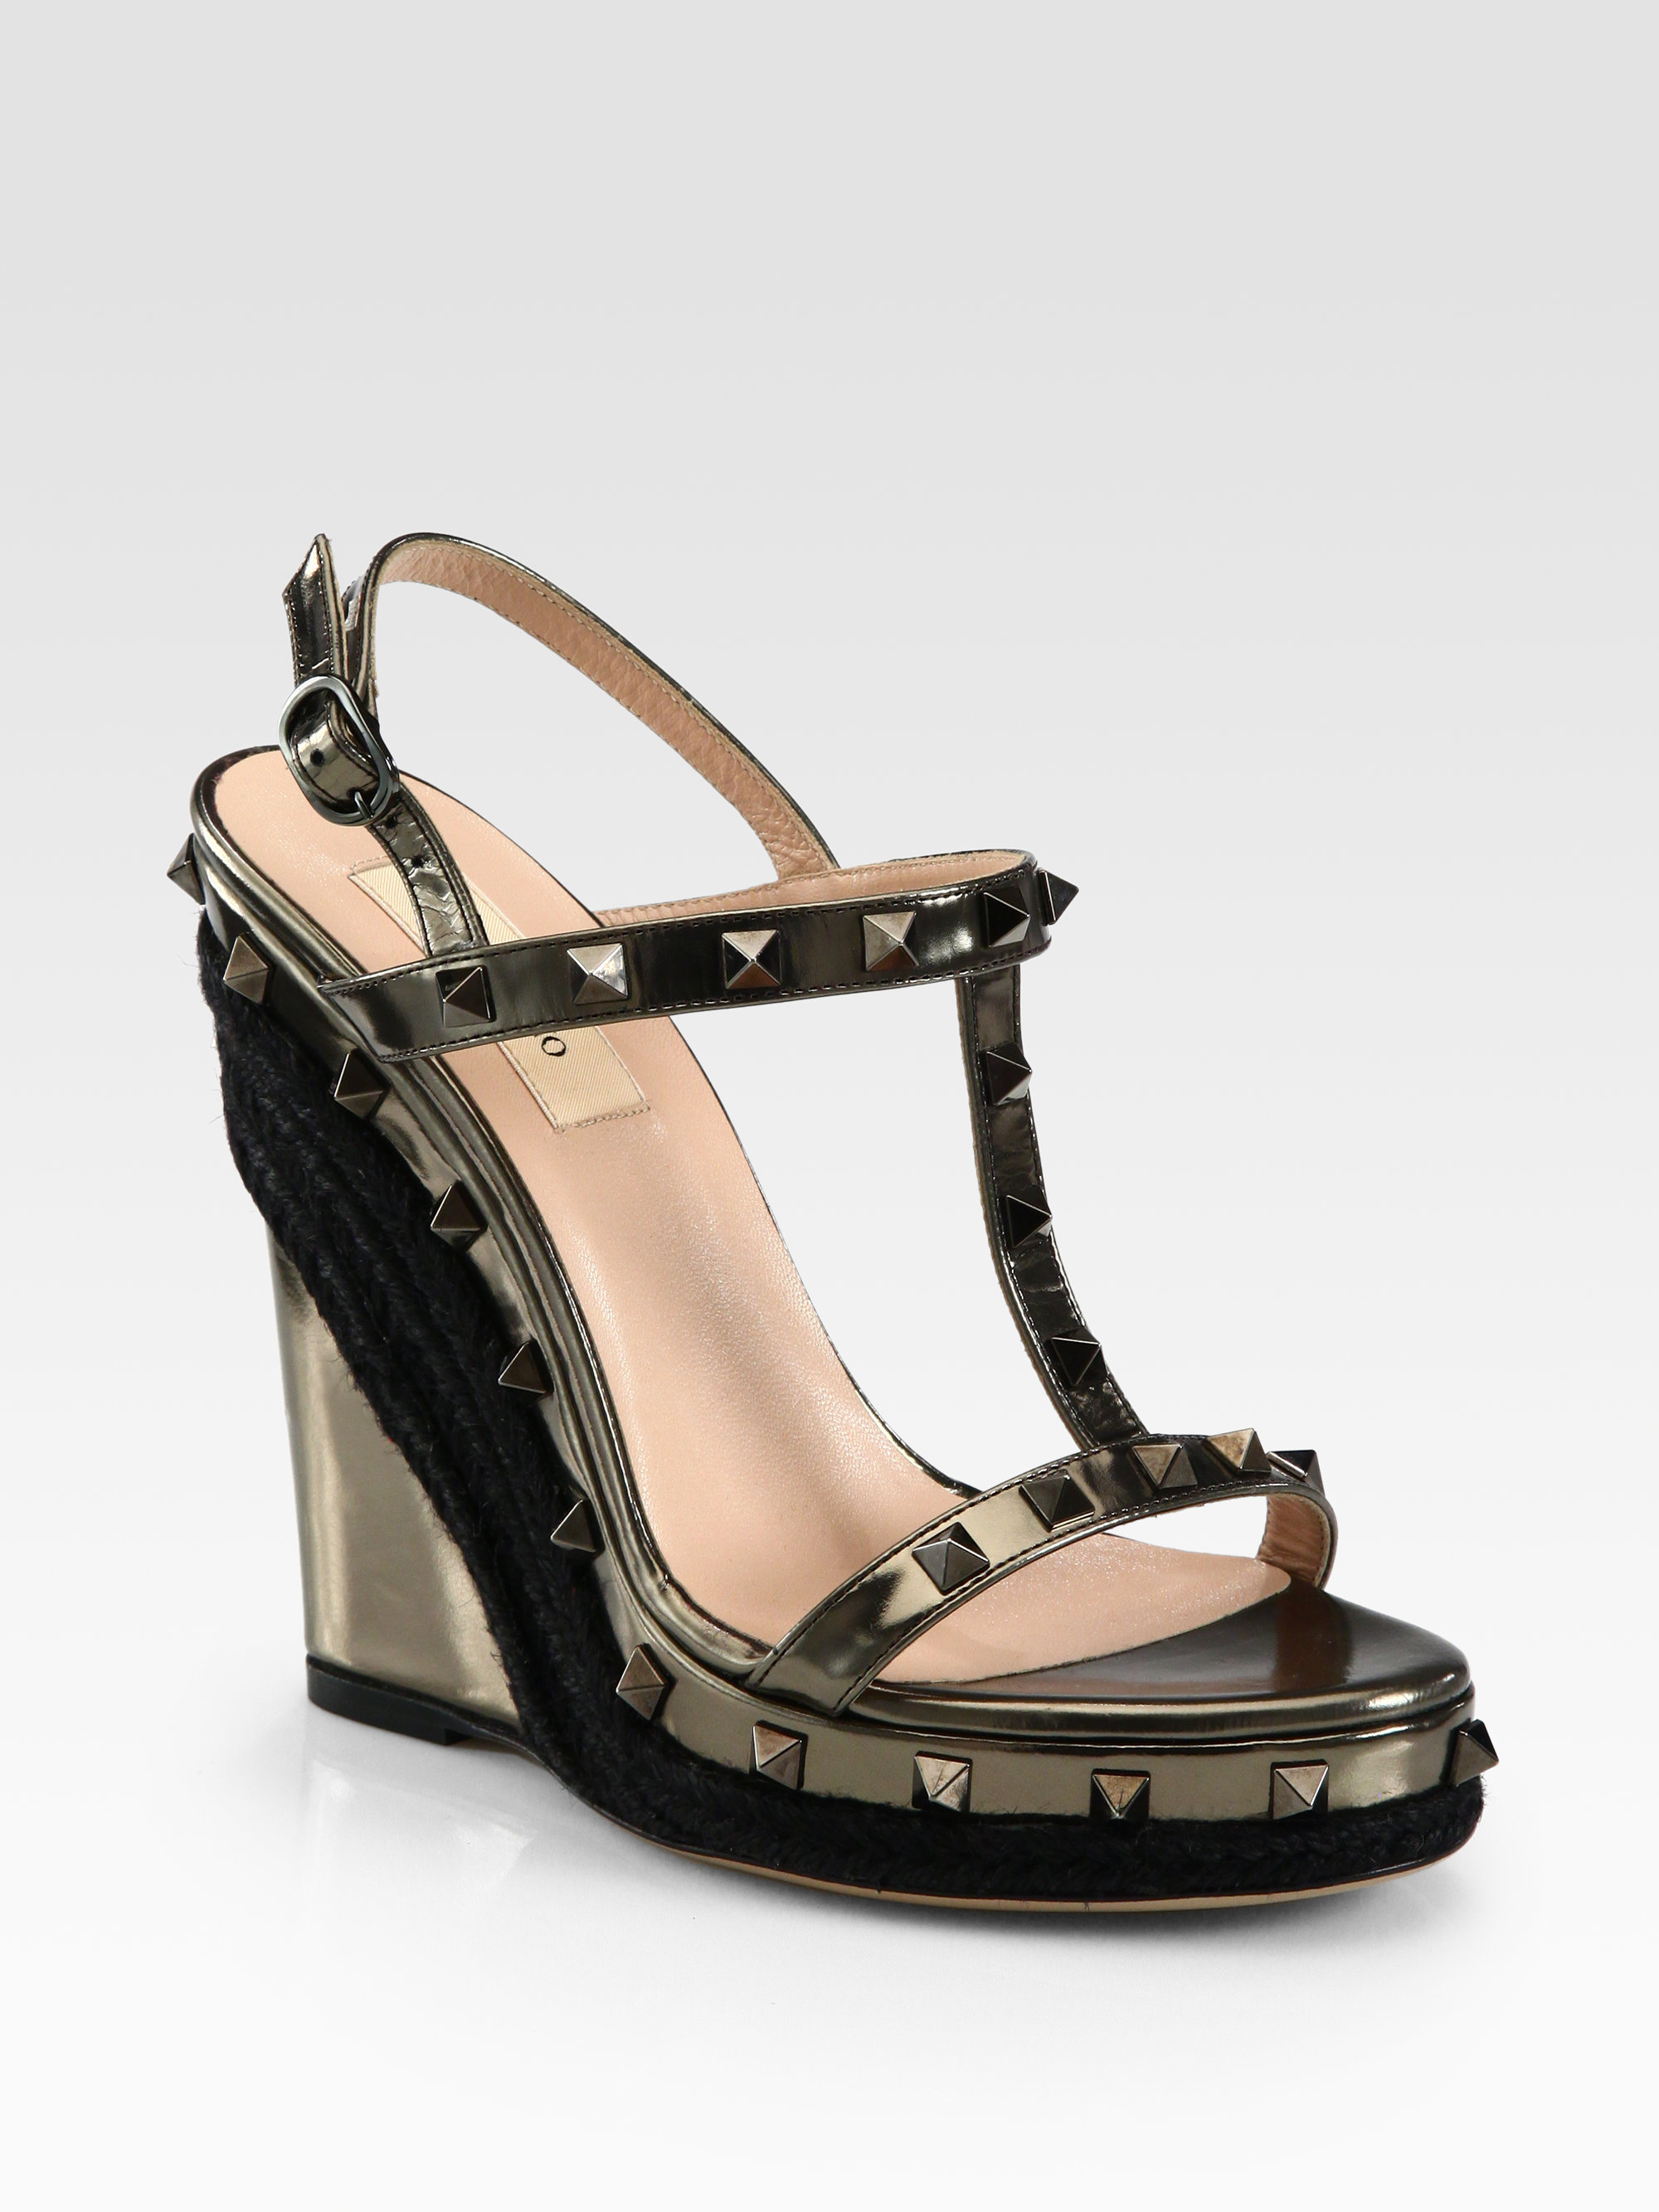 346e038be672 Valentino Rockstud Metallic Leather Wedge Sandals in Gold (dark silver)